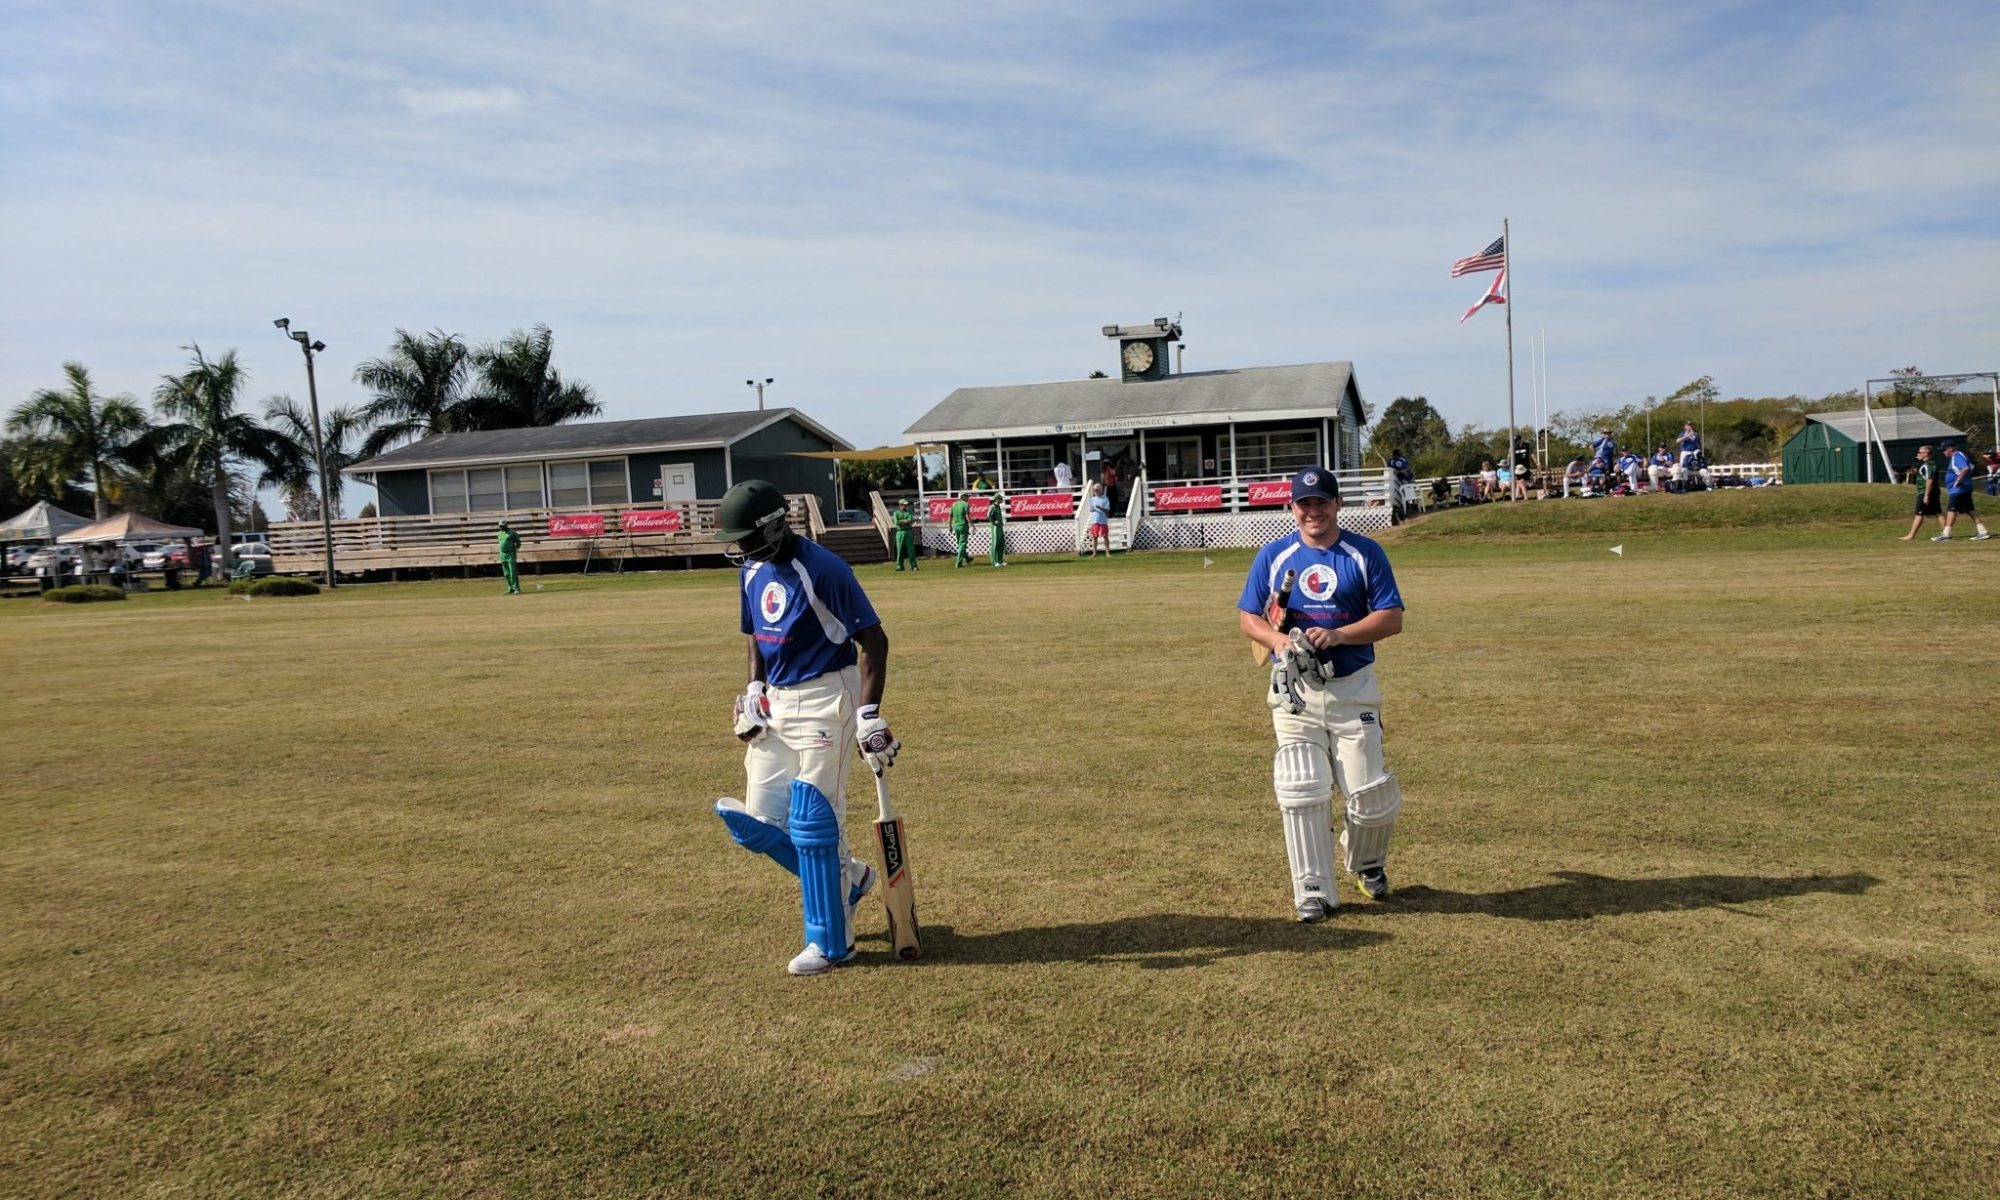 Houston Memorial Batsmen Coming out to Bat